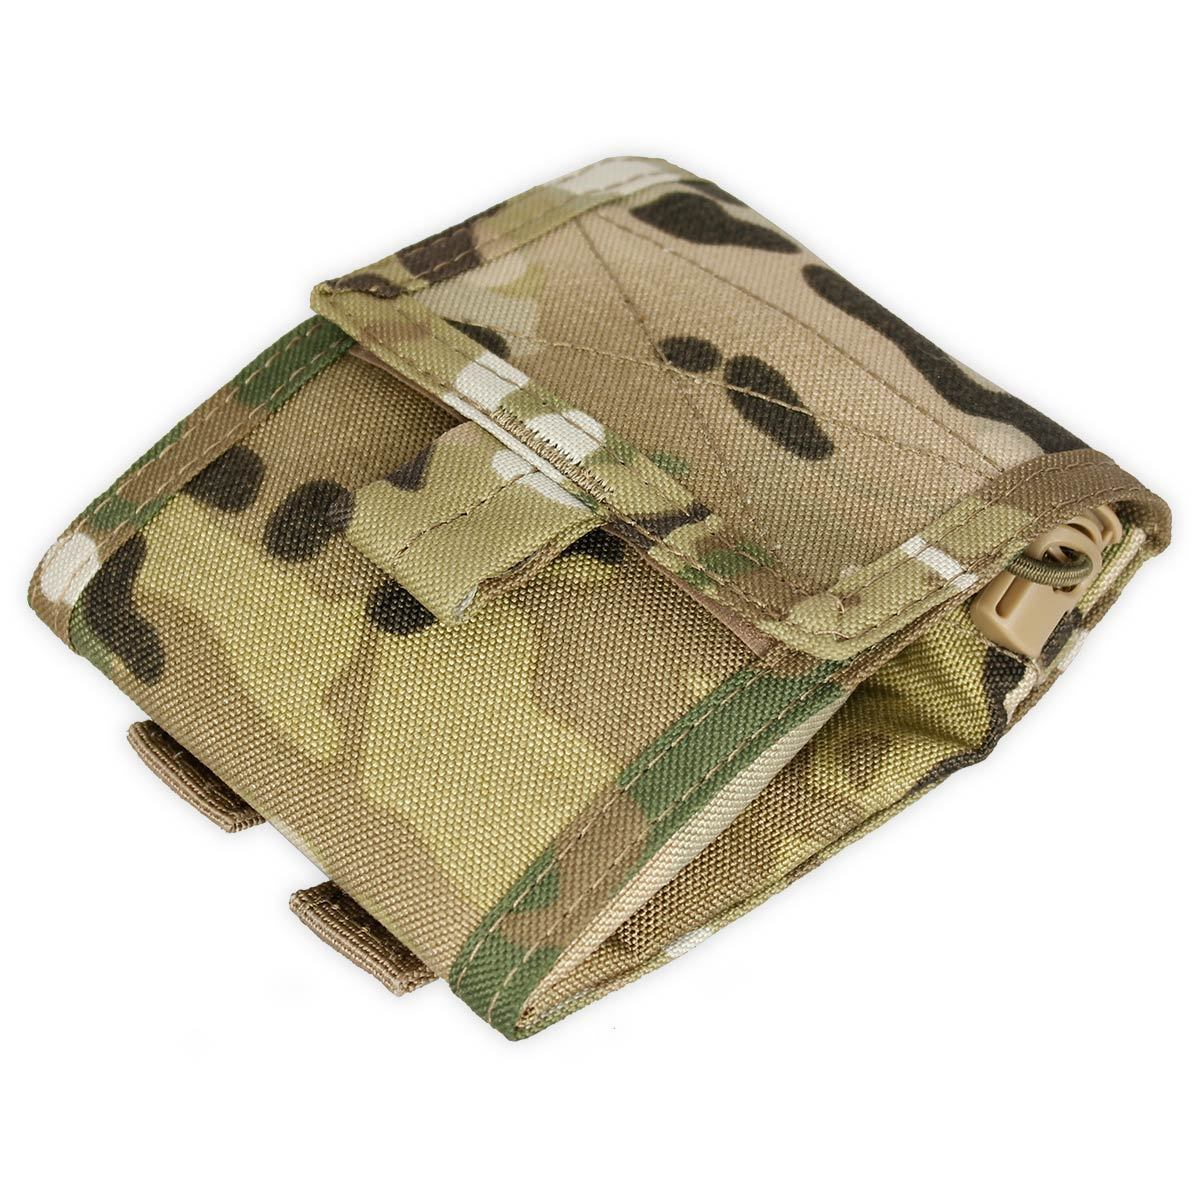 Bulldog Mission Alert Plate Carrier MK1 Bundle MTC Camo | UKMCPro